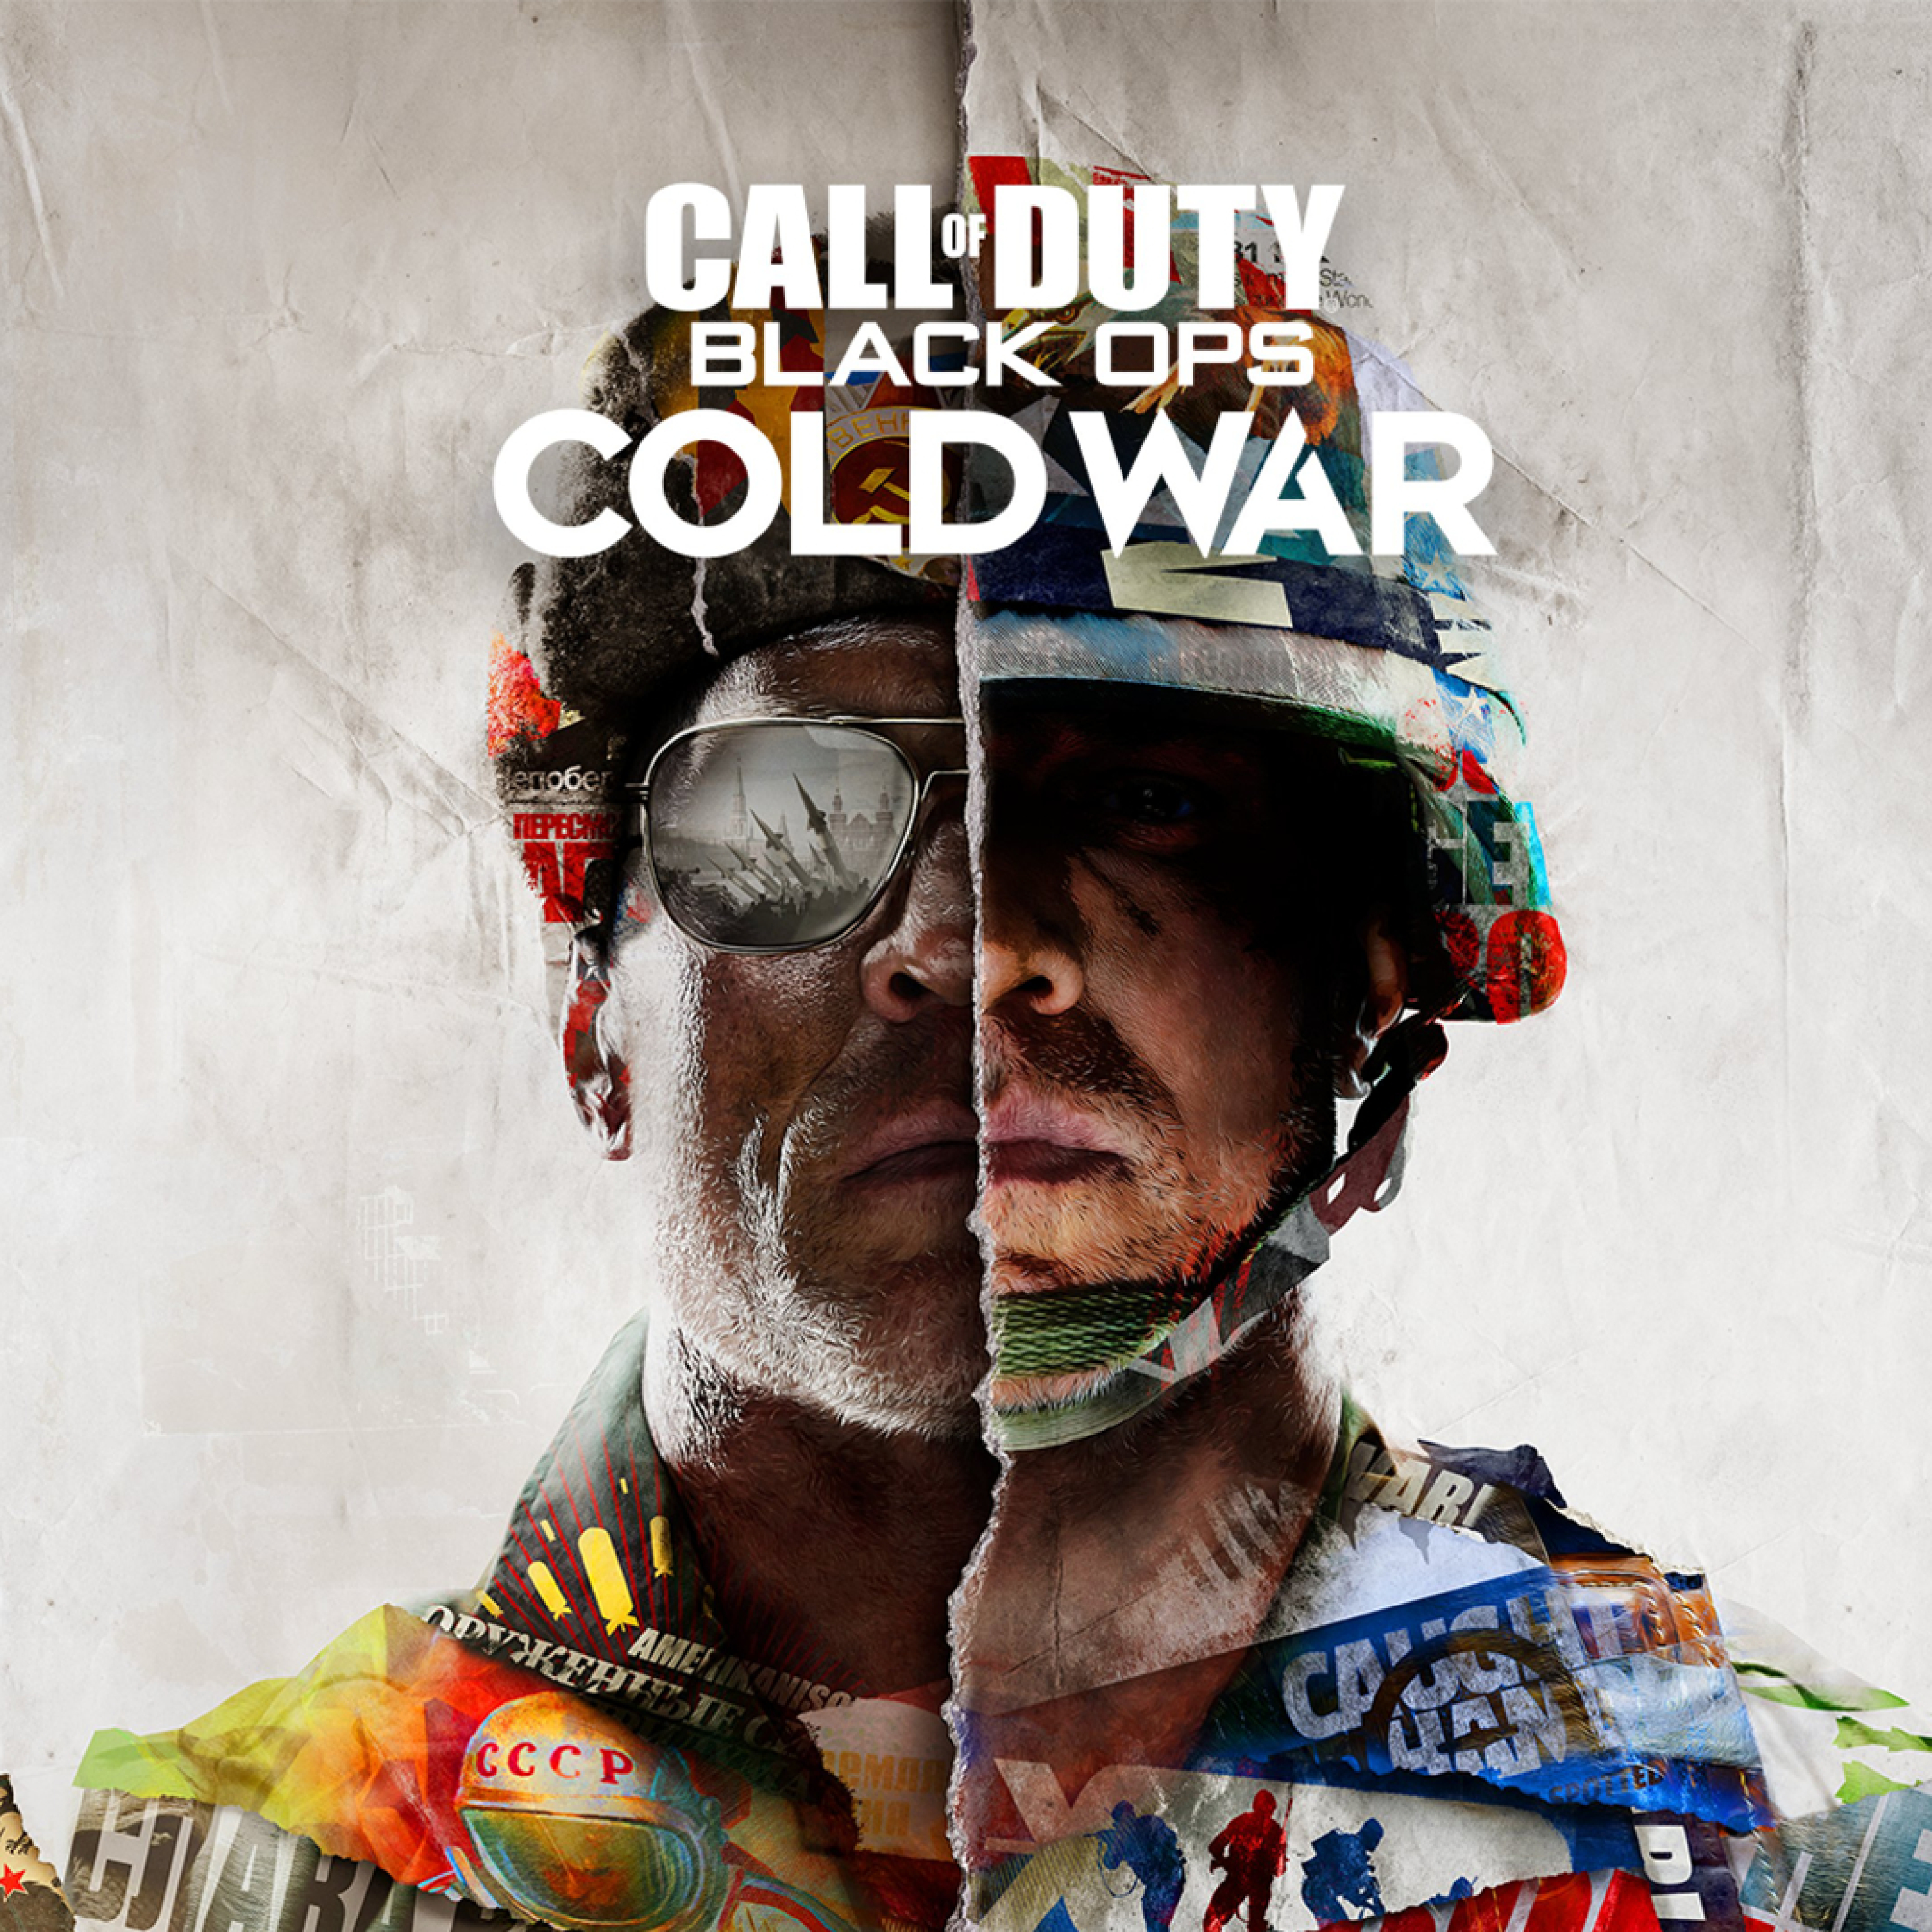 2932x2932 Call Of Duty Black Ops Cold War Ipad Pro Retina Display Wallpaper Hd Games 4k Wallpapers Images Photos And Background